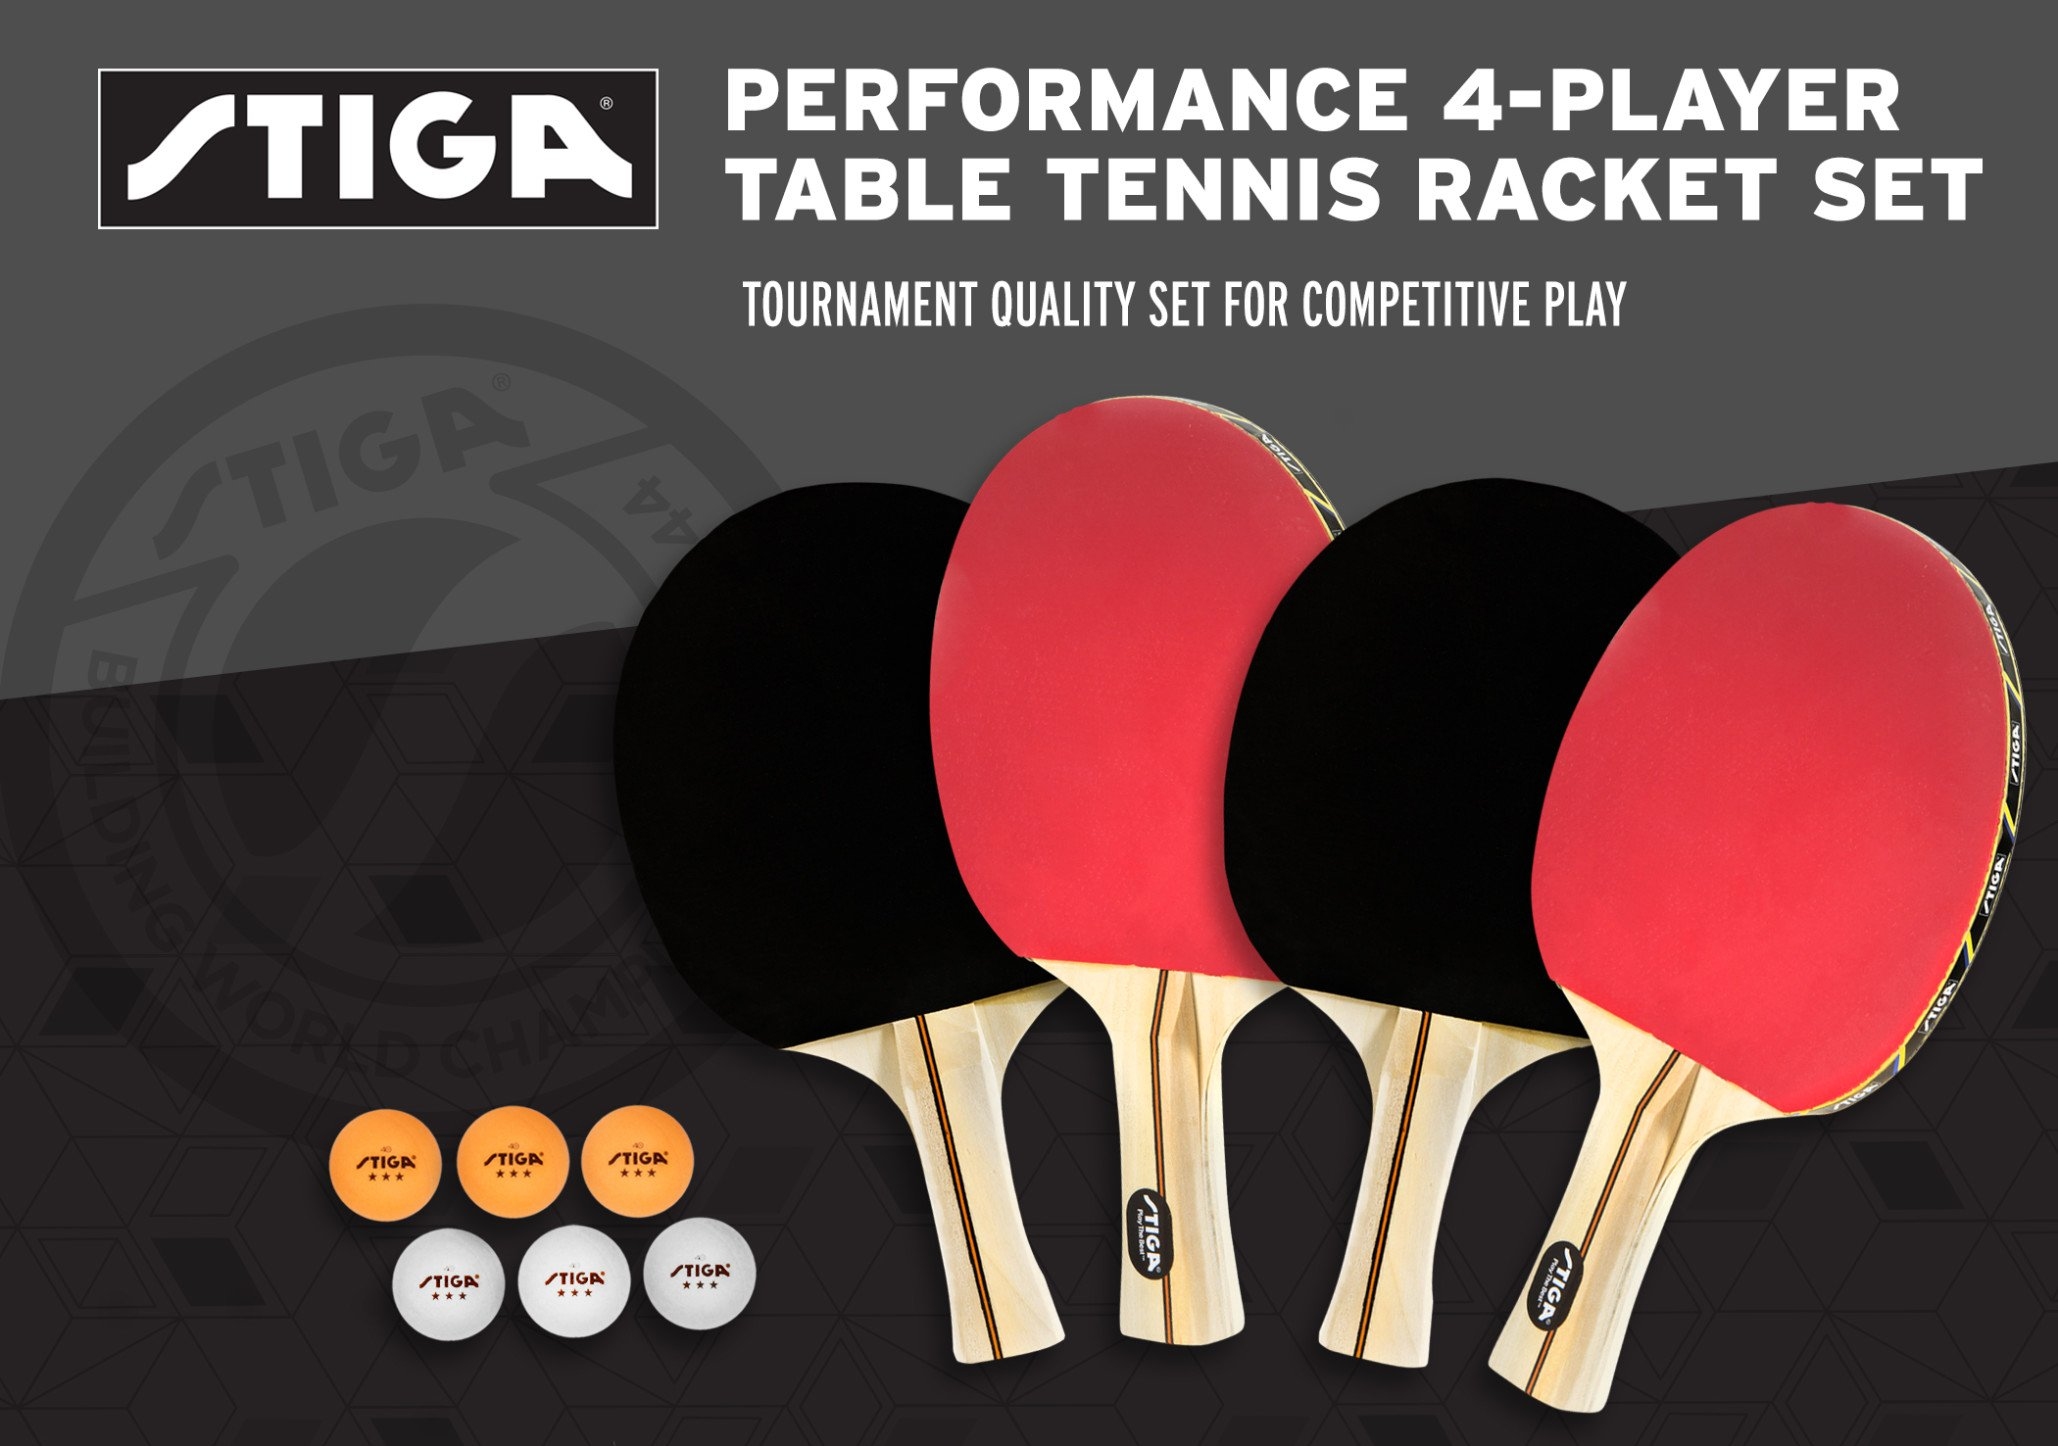 STIGA Performance 4-Player Table Tennis Racket Set with Inverted Rubber for Increased Ball Control and Added Spin by STIGA (Image #3)